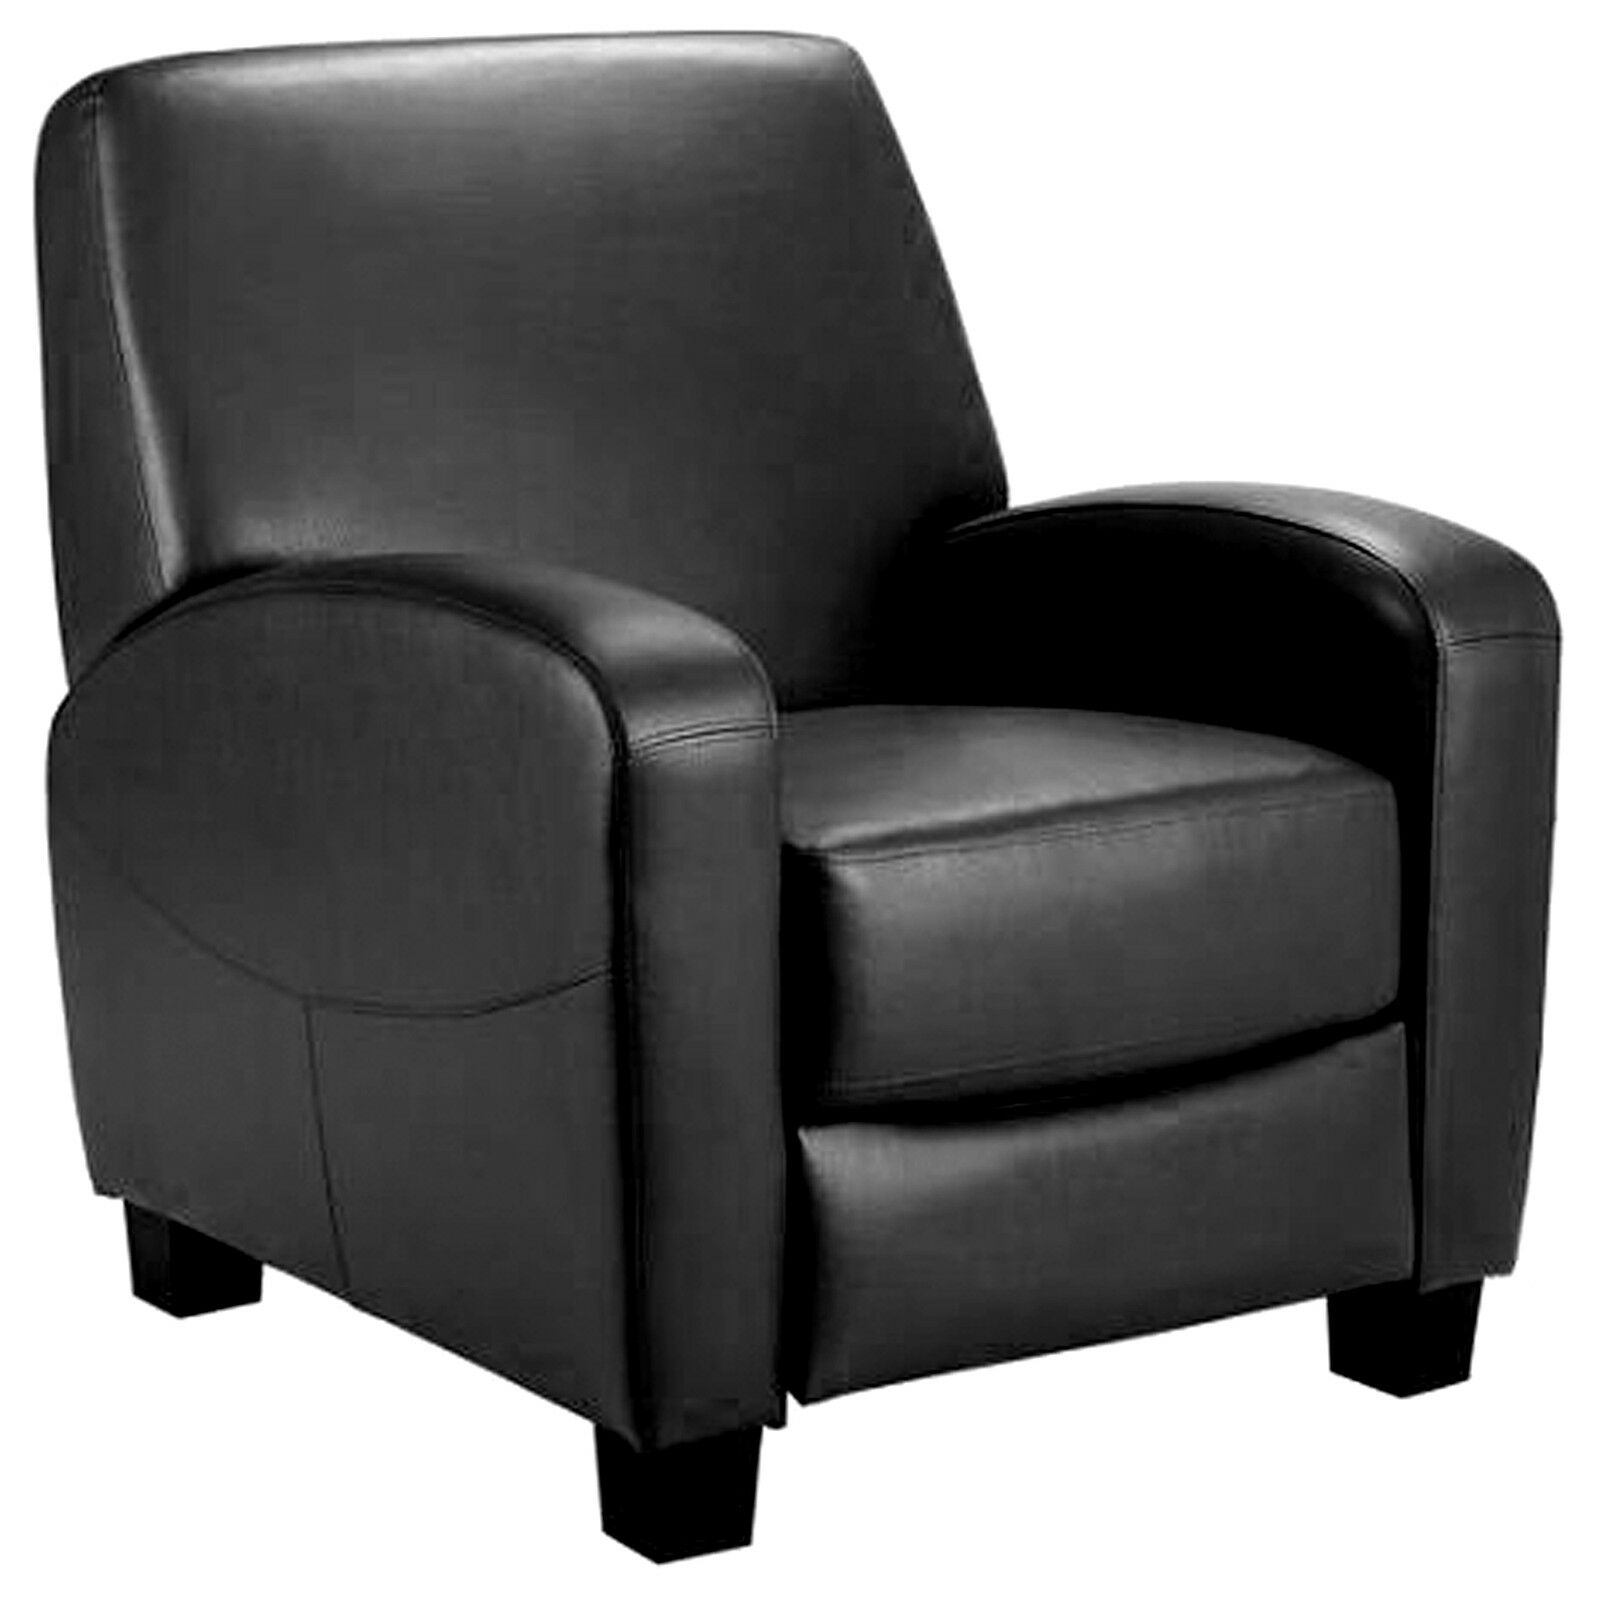 Movie Theater Chairs Home Theater Recliner Black Faux Leather Lounge Club Chair